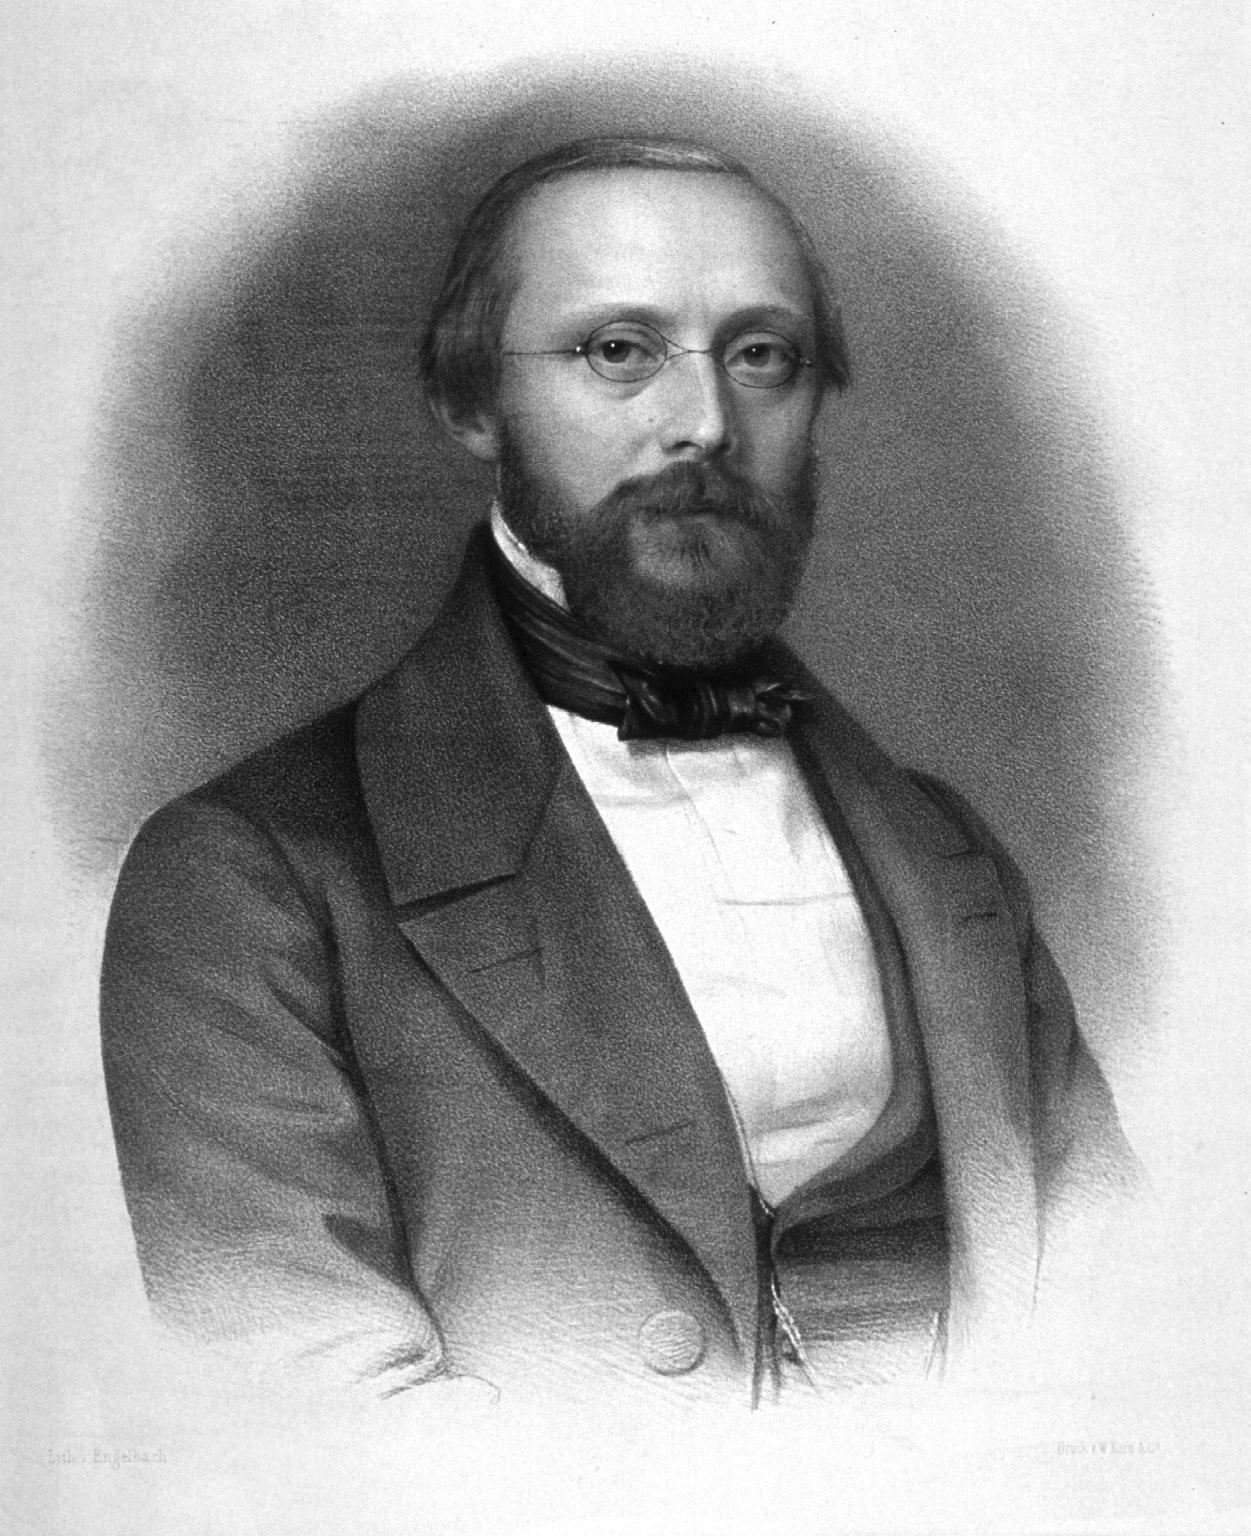 "The image ""http://upload.wikimedia.org/wikipedia/commons/8/80/Rudolf_Virchow.jpg"" cannot be displayed, because it contains errors."